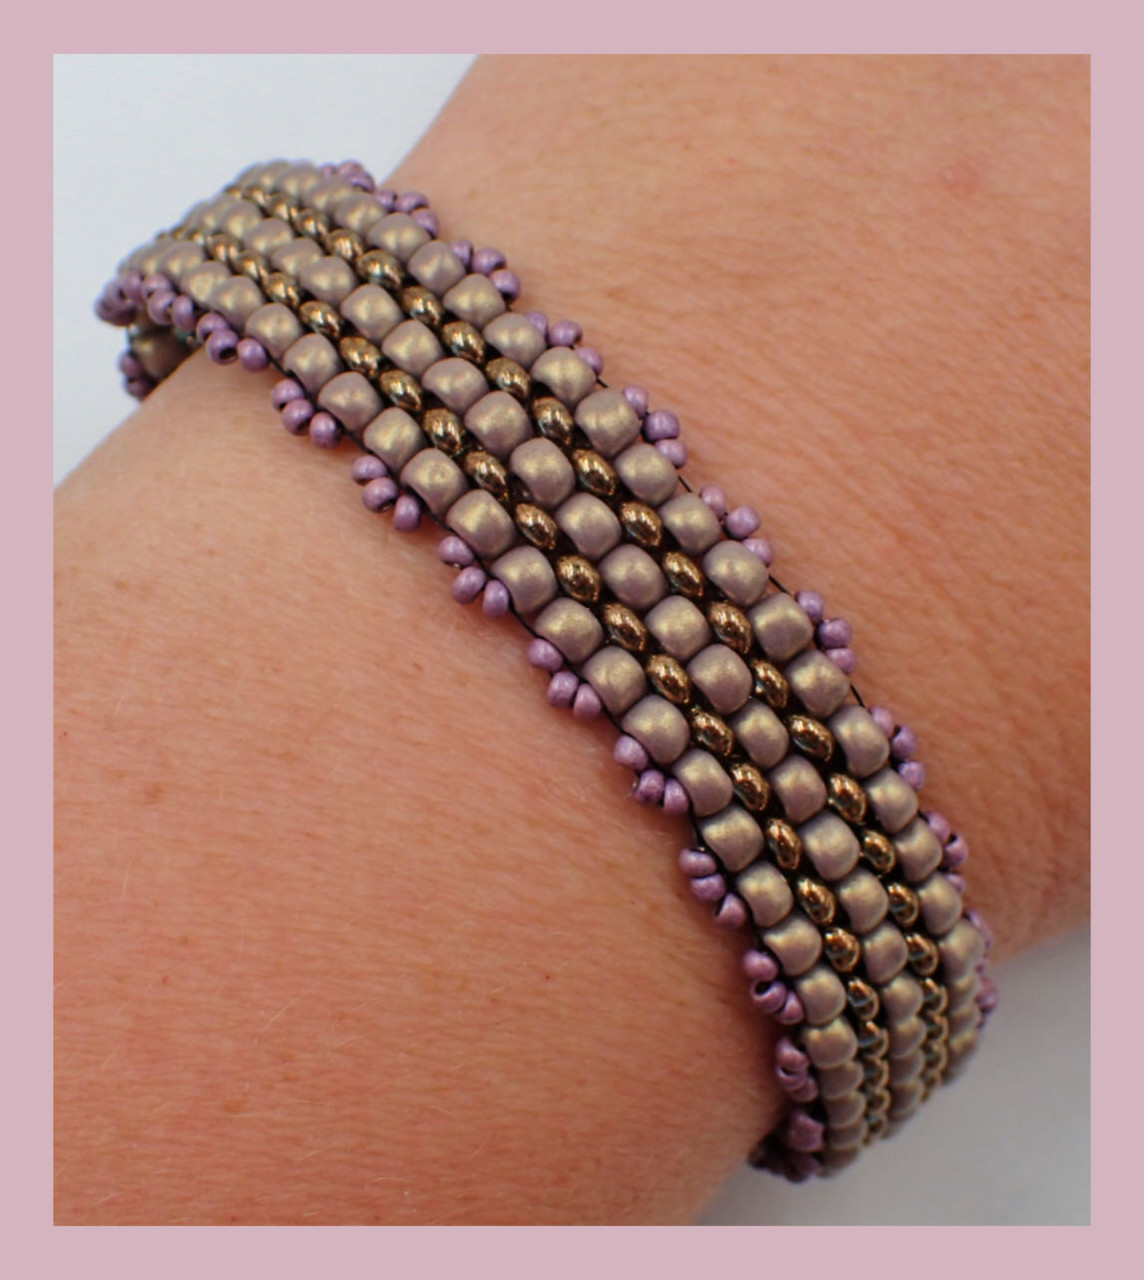 Highways & Byways Bracelet PRINTED Pattern - Mailed to your home